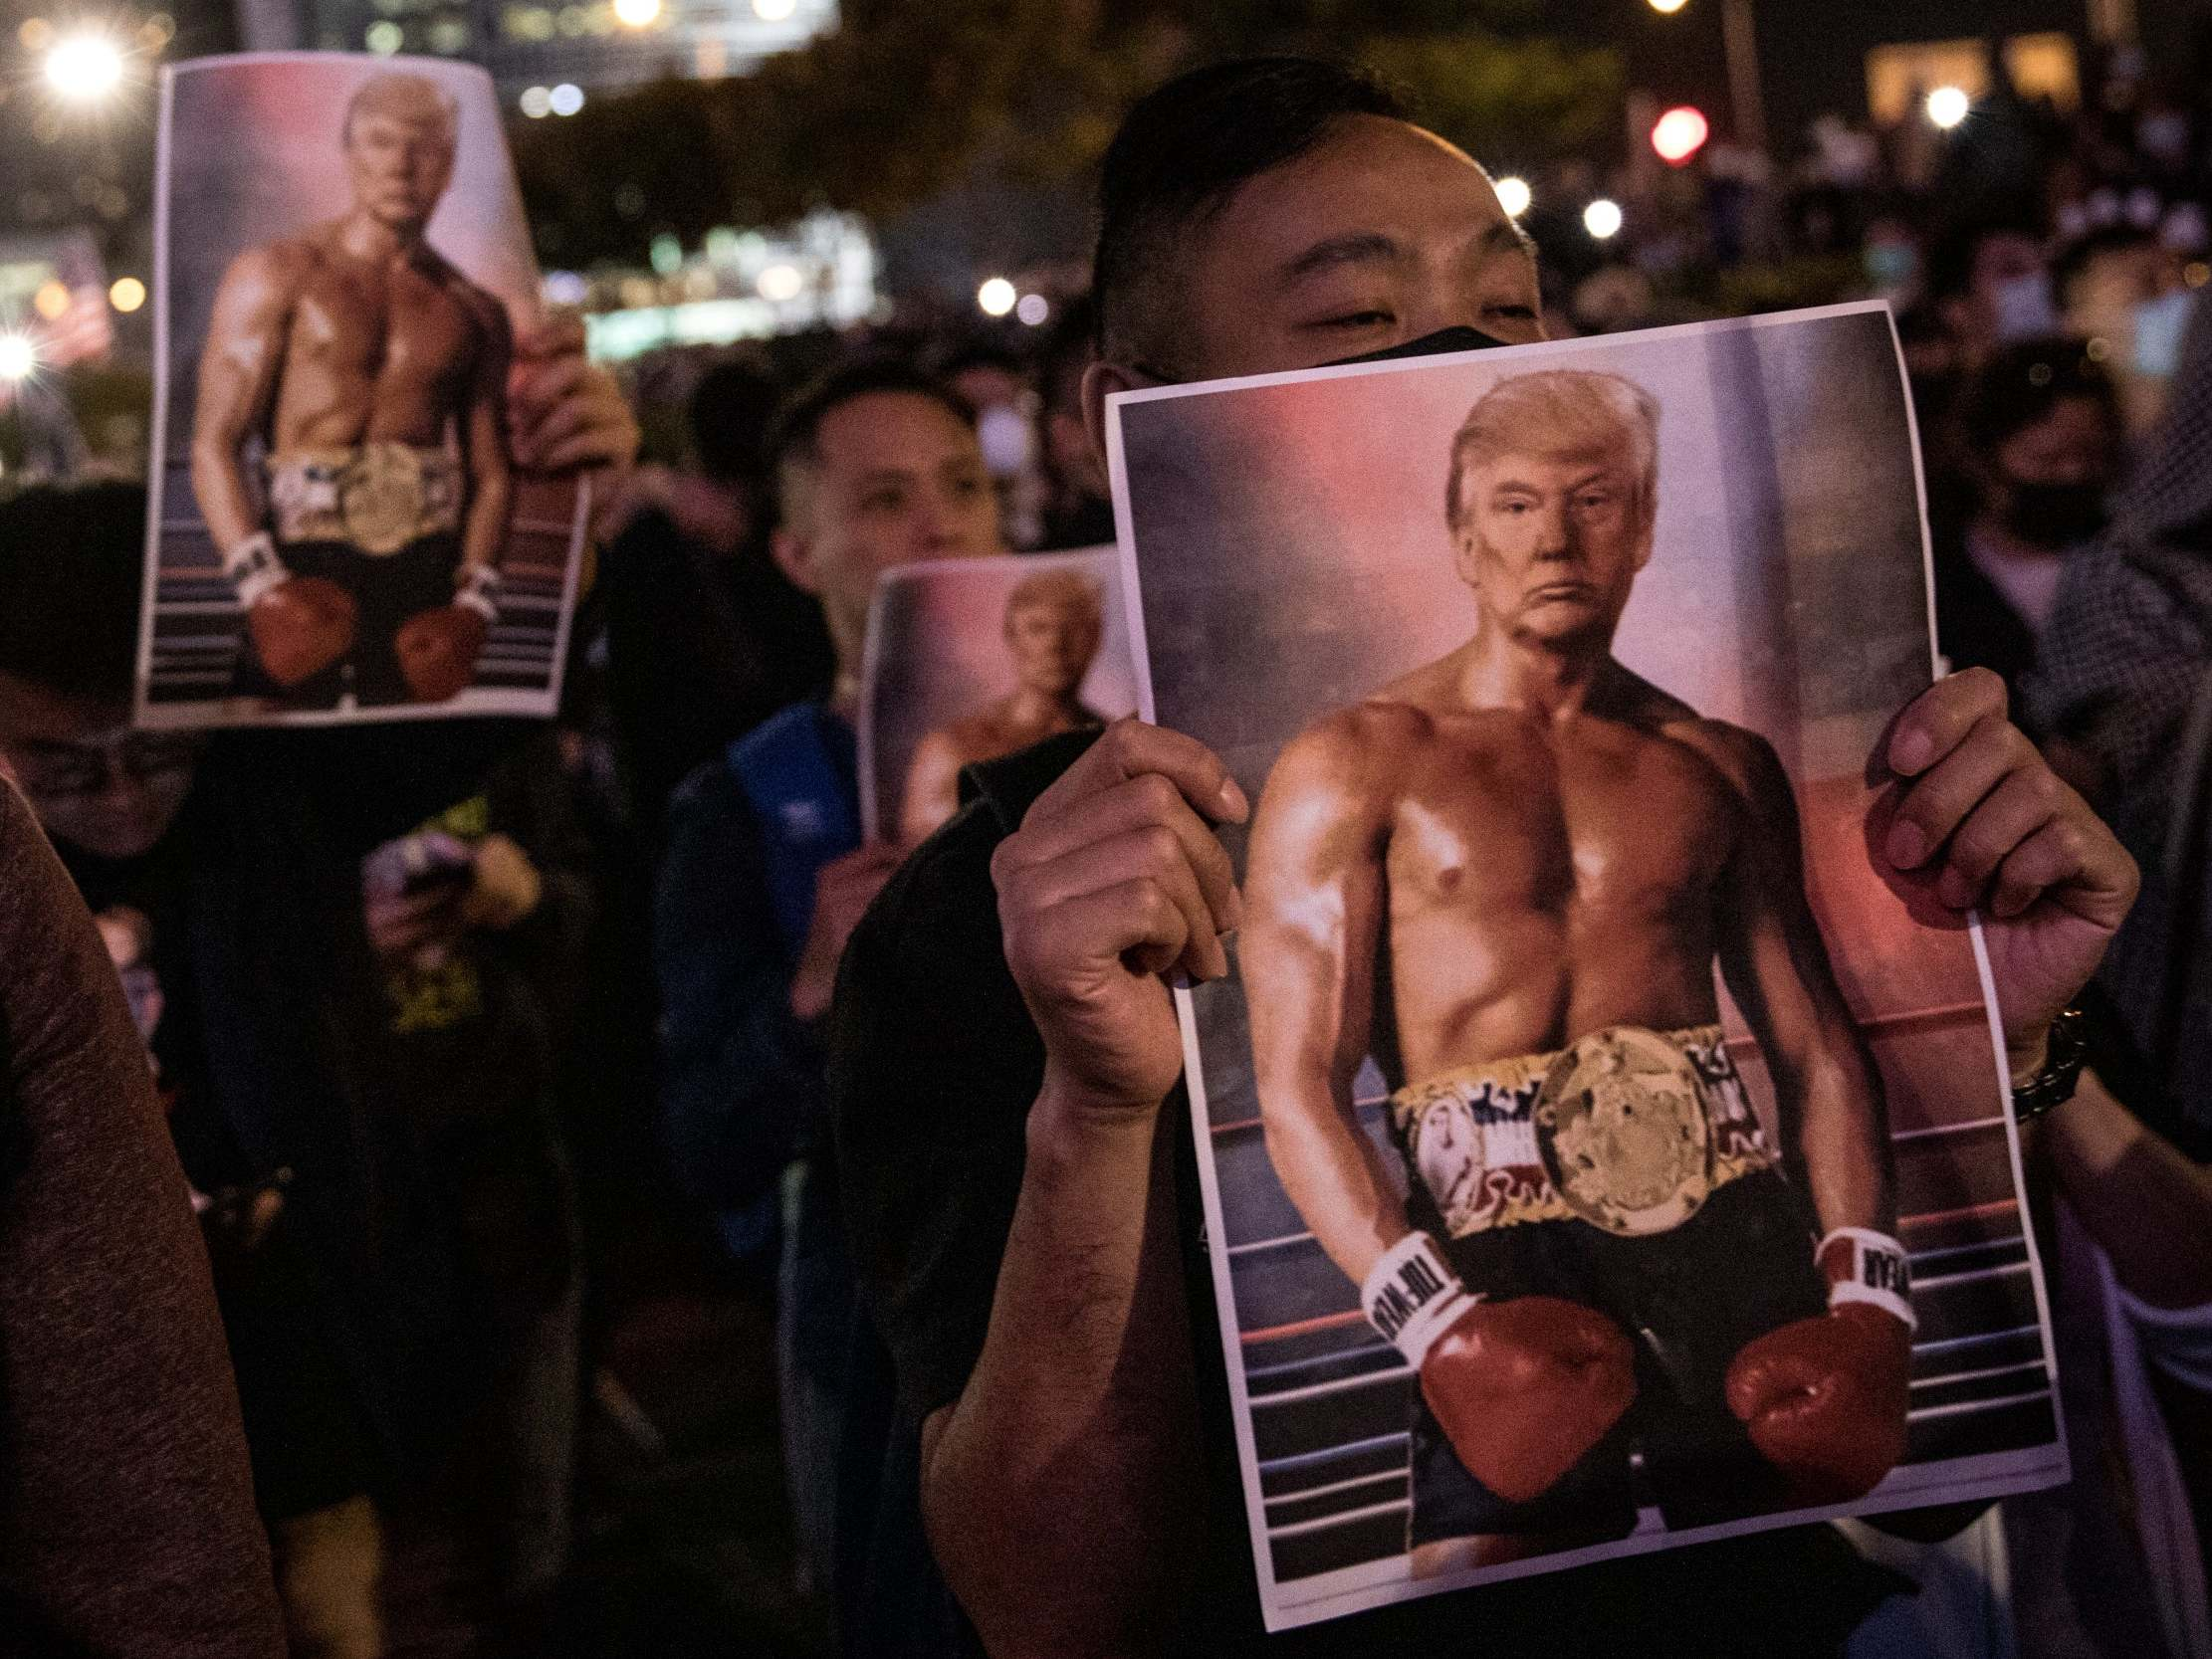 Hong Kong protesters wave posters of Trump's shirtless Rocky tweet to thank him for signing law supporting them